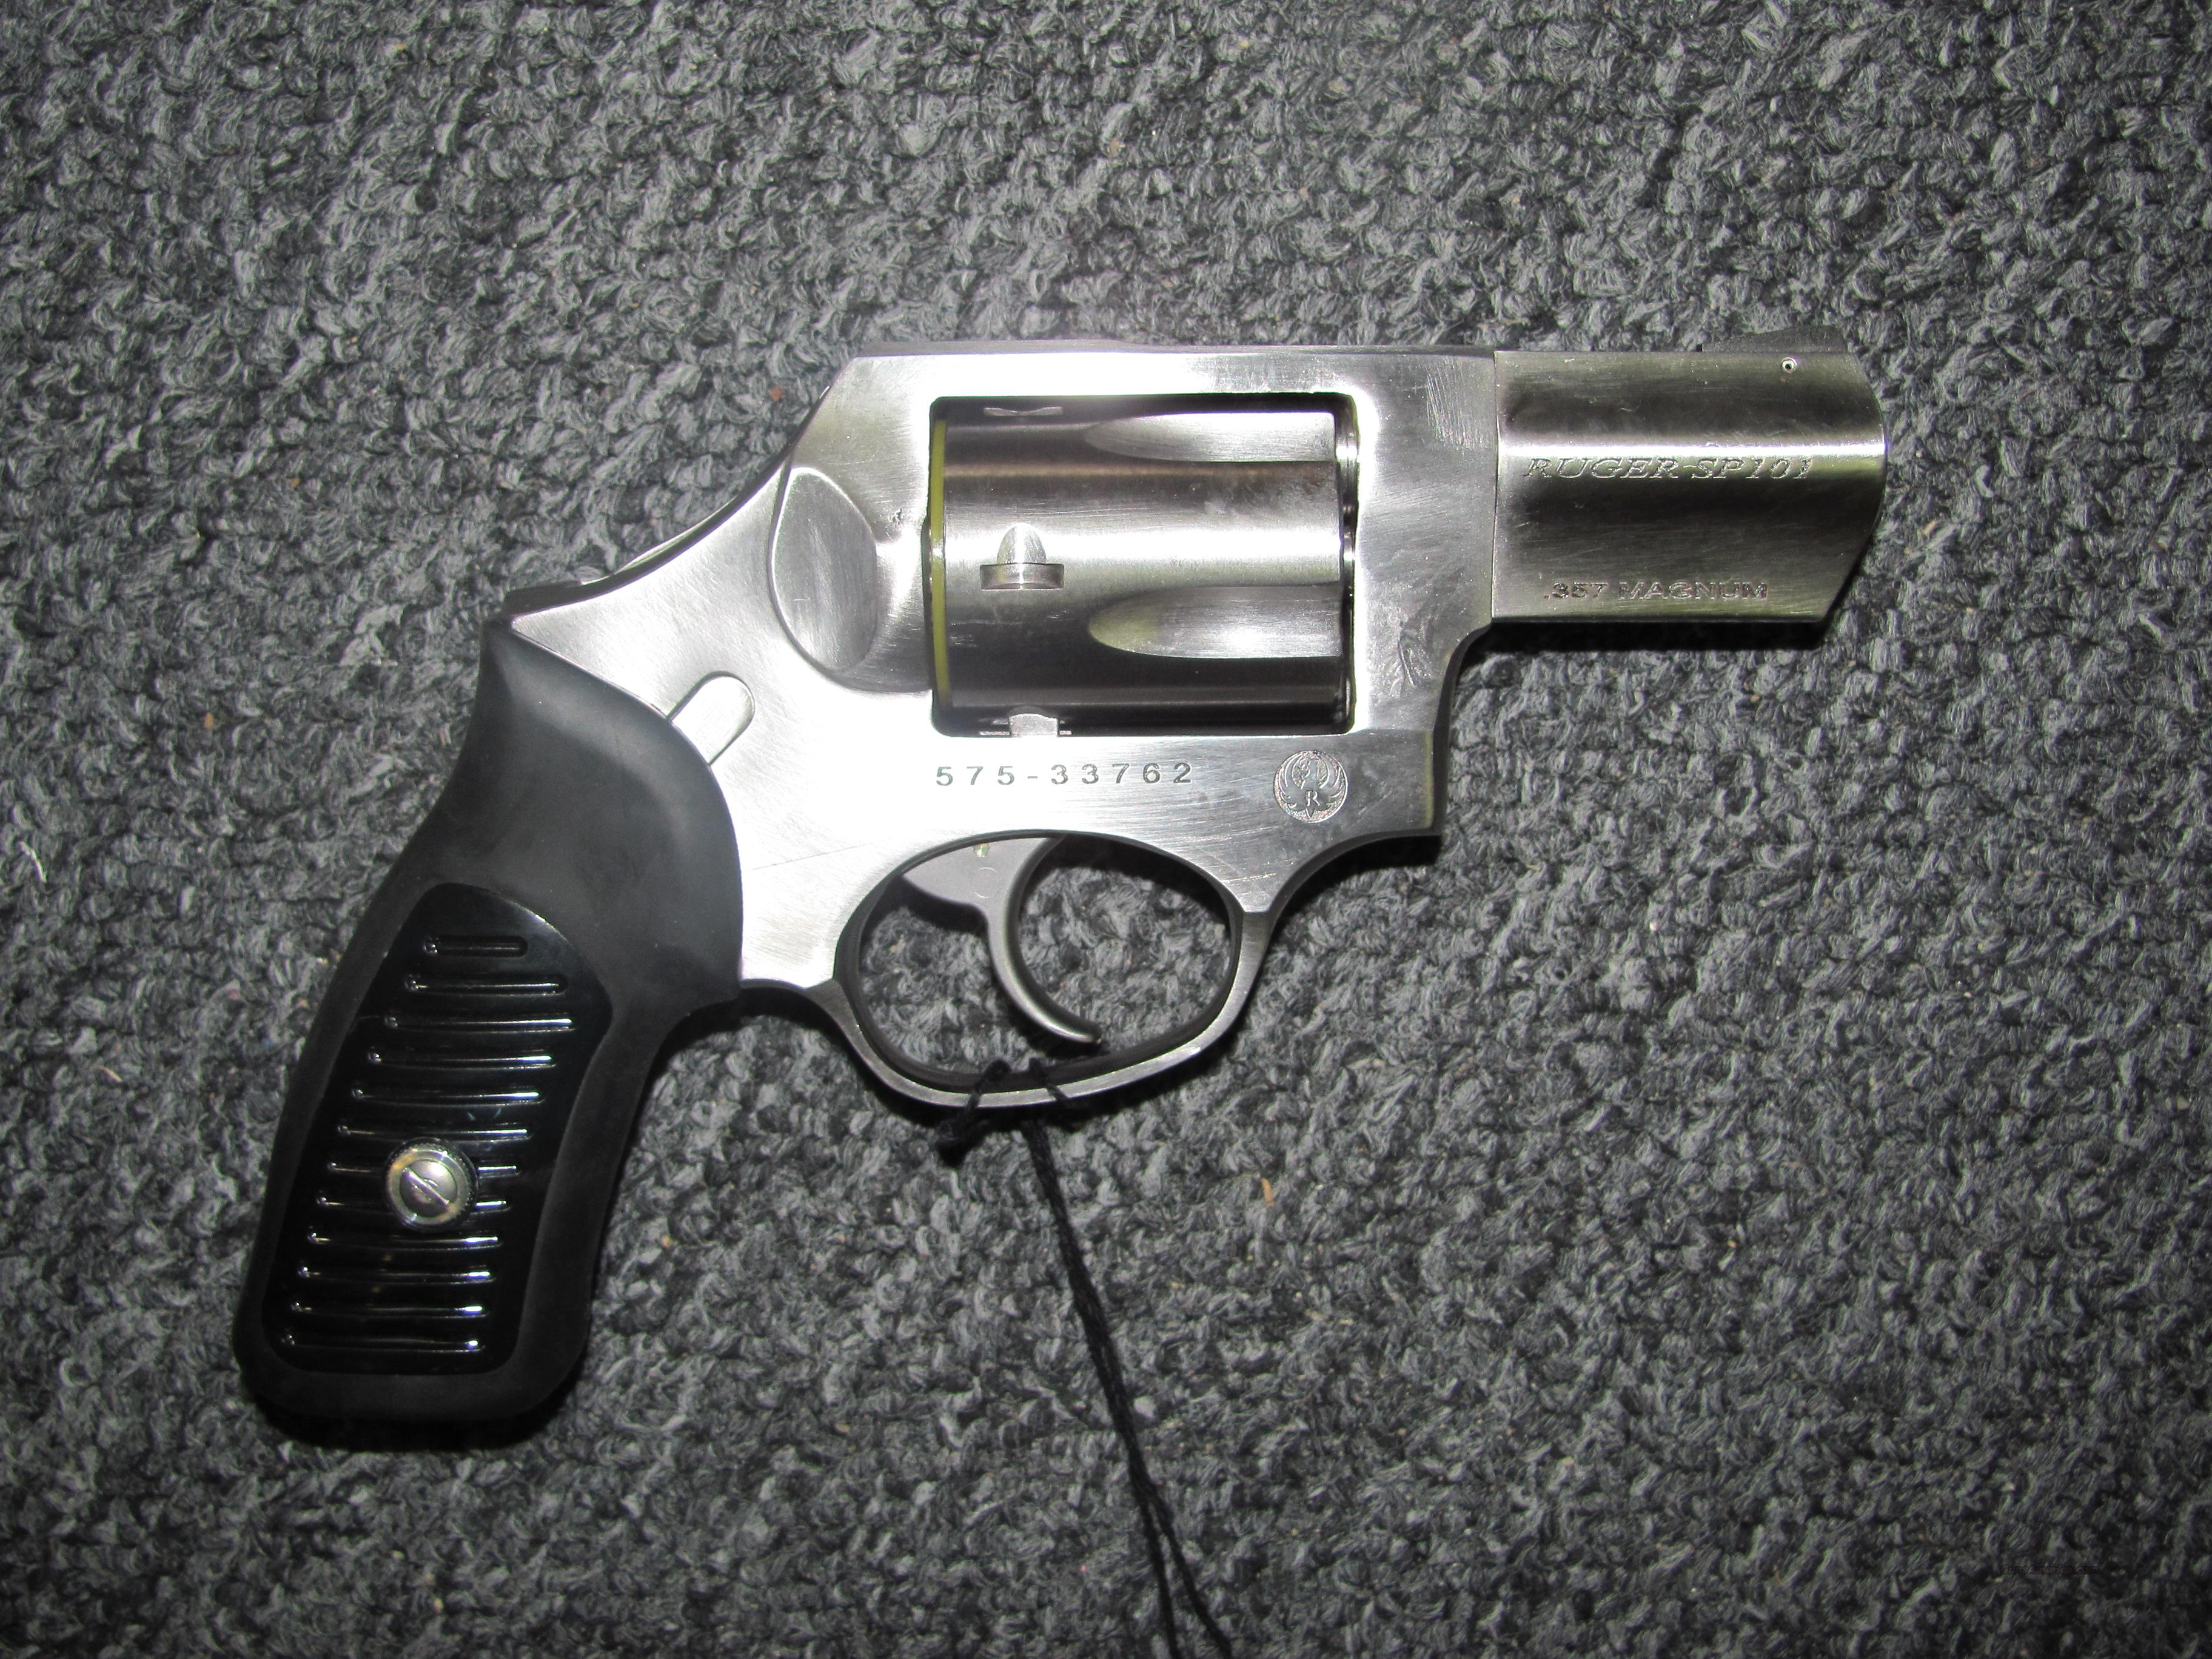 SP101  Guns > Pistols > Ruger Double Action Revolver > SP101 Type